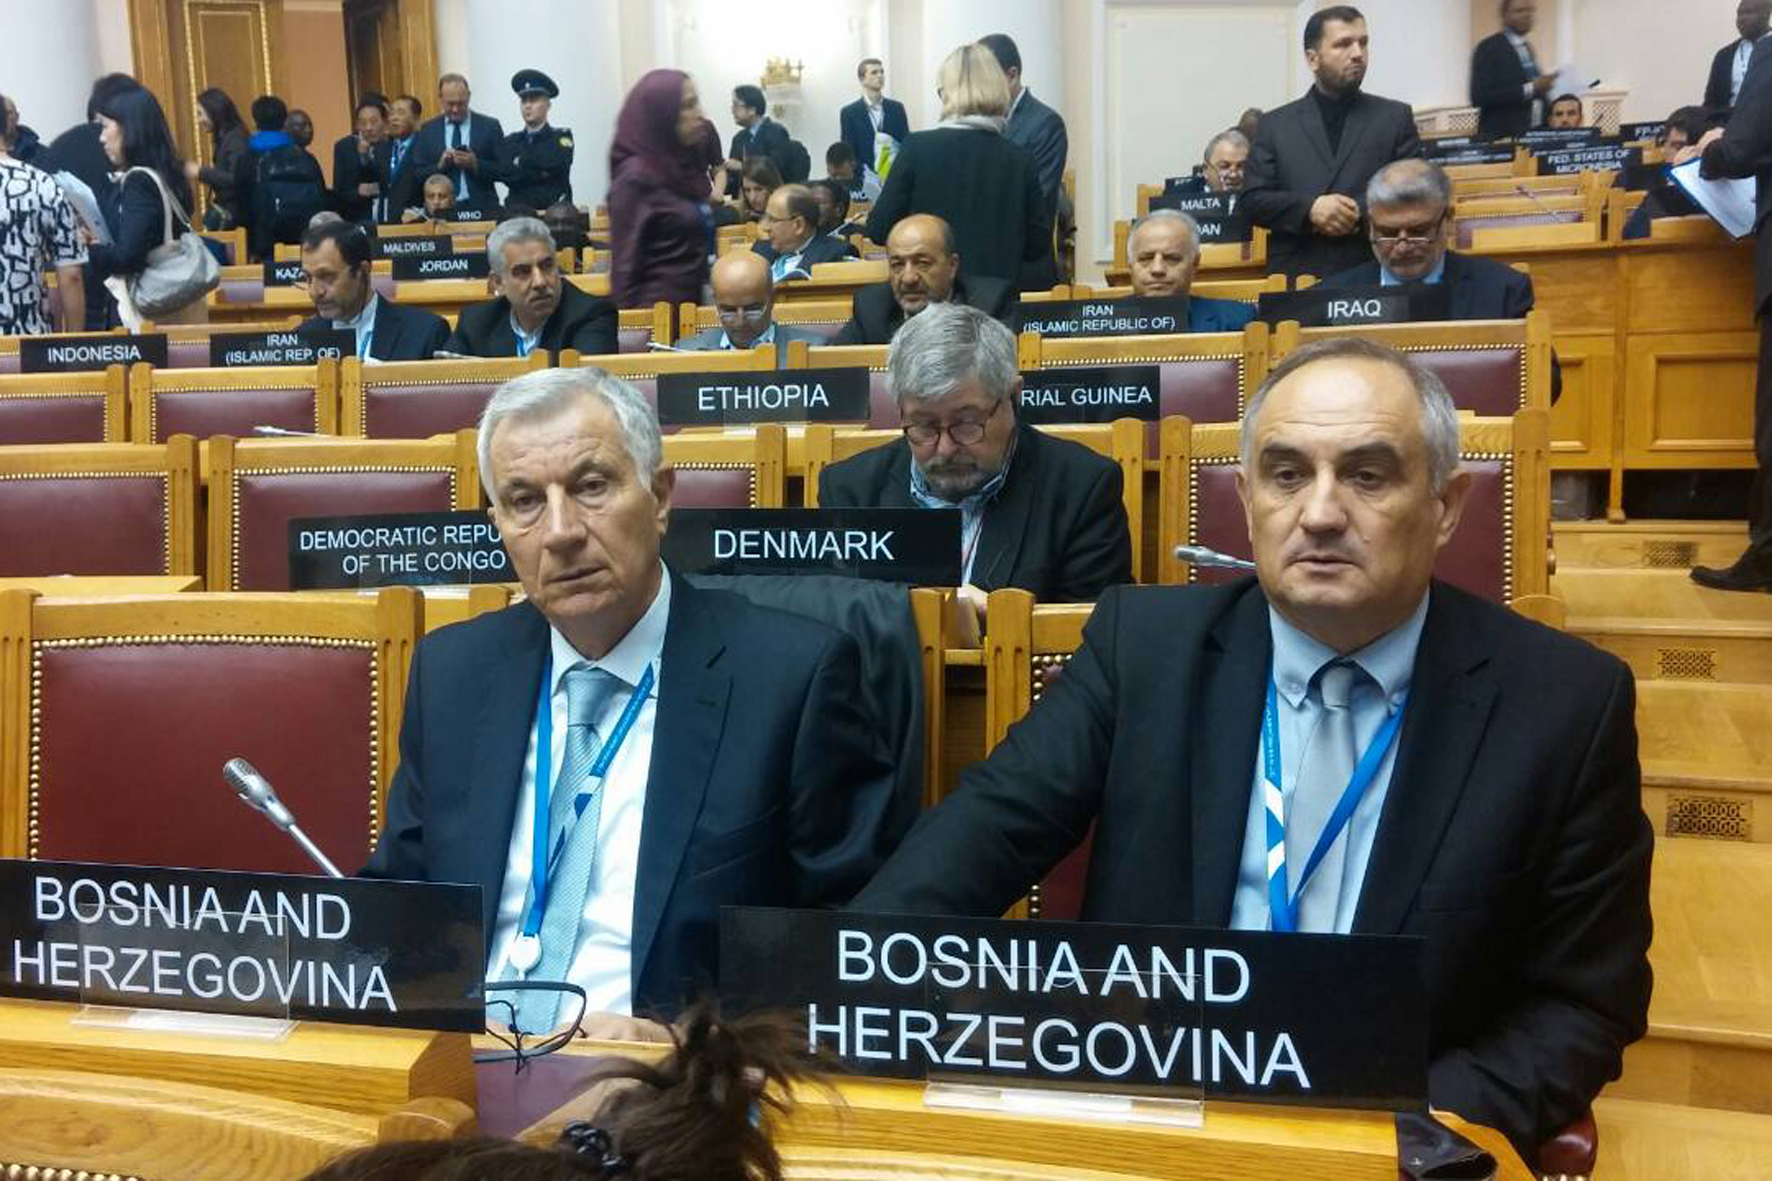 Members of the PA BiH Delegation to IPU Predrag Kožul and Sredoje Nović attend the autumn session of the Interparliamentary Union in St. Petersburg